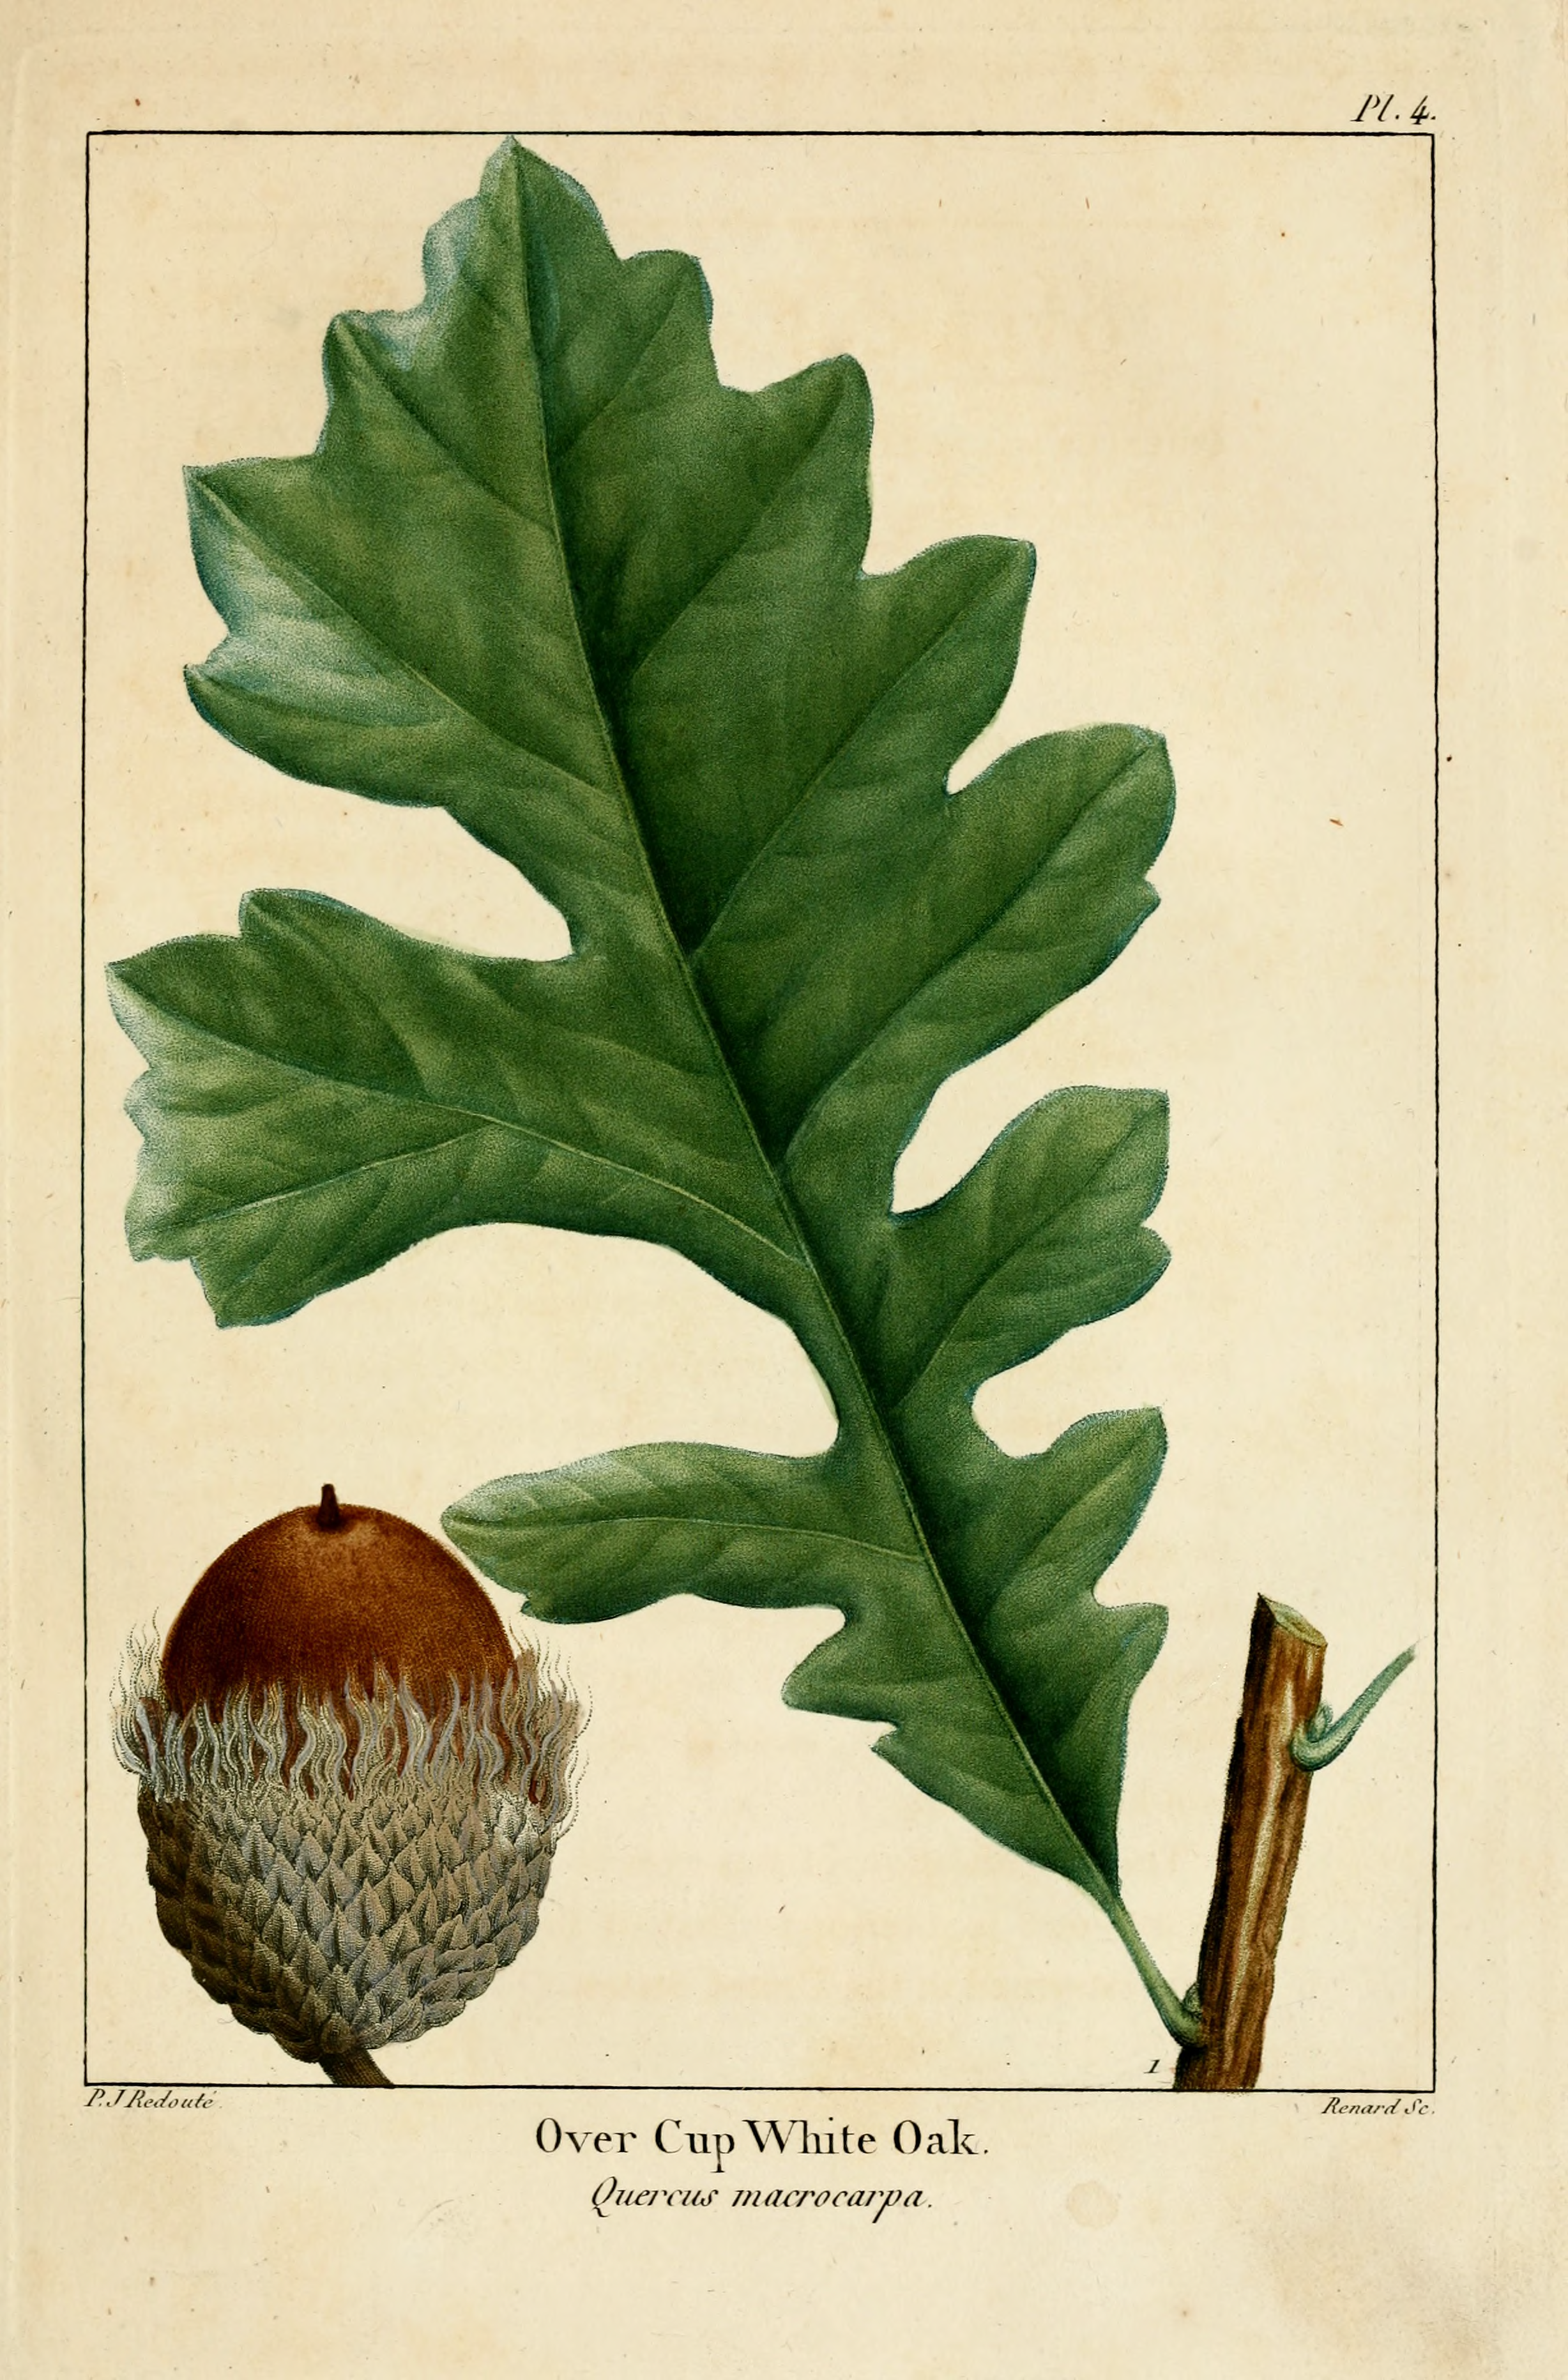 Original title:    DescriptionNAS-004 Quercus macrocarpa.png English: Quercus macrocarpa - Bur oak (original caption: Over Cup White Oak Quercus macrocarpa) Date 1819 Source The North American sylva, or A description of the forest trees of the United States, Canada and Nova Scotia ... to which is added a description of the most useful of the European forest trees ... Tr. from the French of F. Andrew Michaux. Author François André Michaux, Augustus Lucas Hillhouse (translator), Pierre Joseph Redouté (illustrator), Renard (engraver)